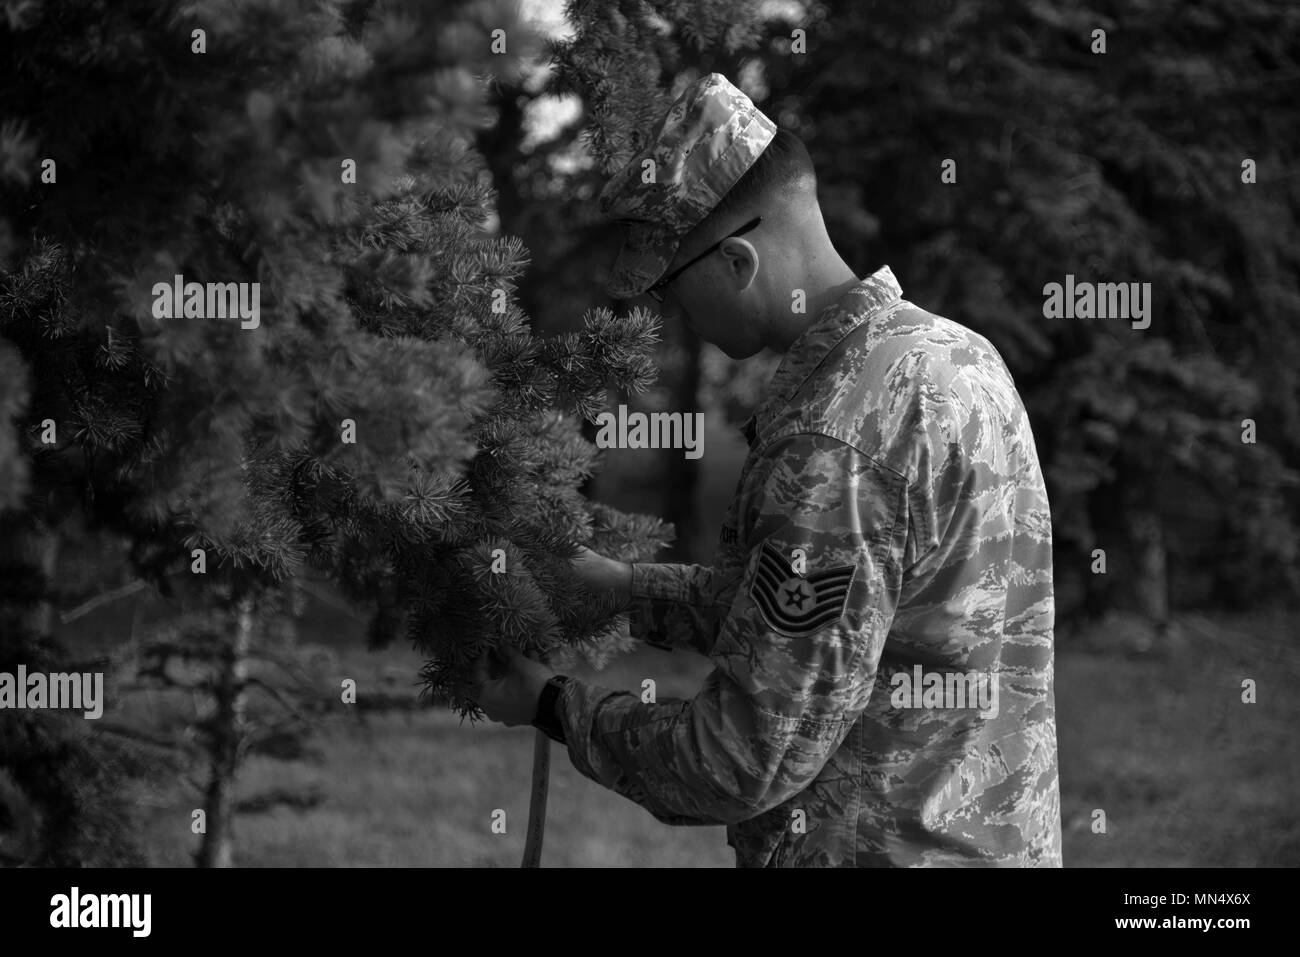 Tech. Sgt. Brandon C. Rogers, 5th Communications Squadron intrusion detection systems NCO in charge, ties a ribbon on a tree at Minot Air Force Base, N.D., Aug. 30, 2017. The ribbons symbolize a humble tribute to the service members who were prisoners of war or missing in action. (U.S. Air Force photo by Airman 1st Class Dillon J. Audit) - Stock Image